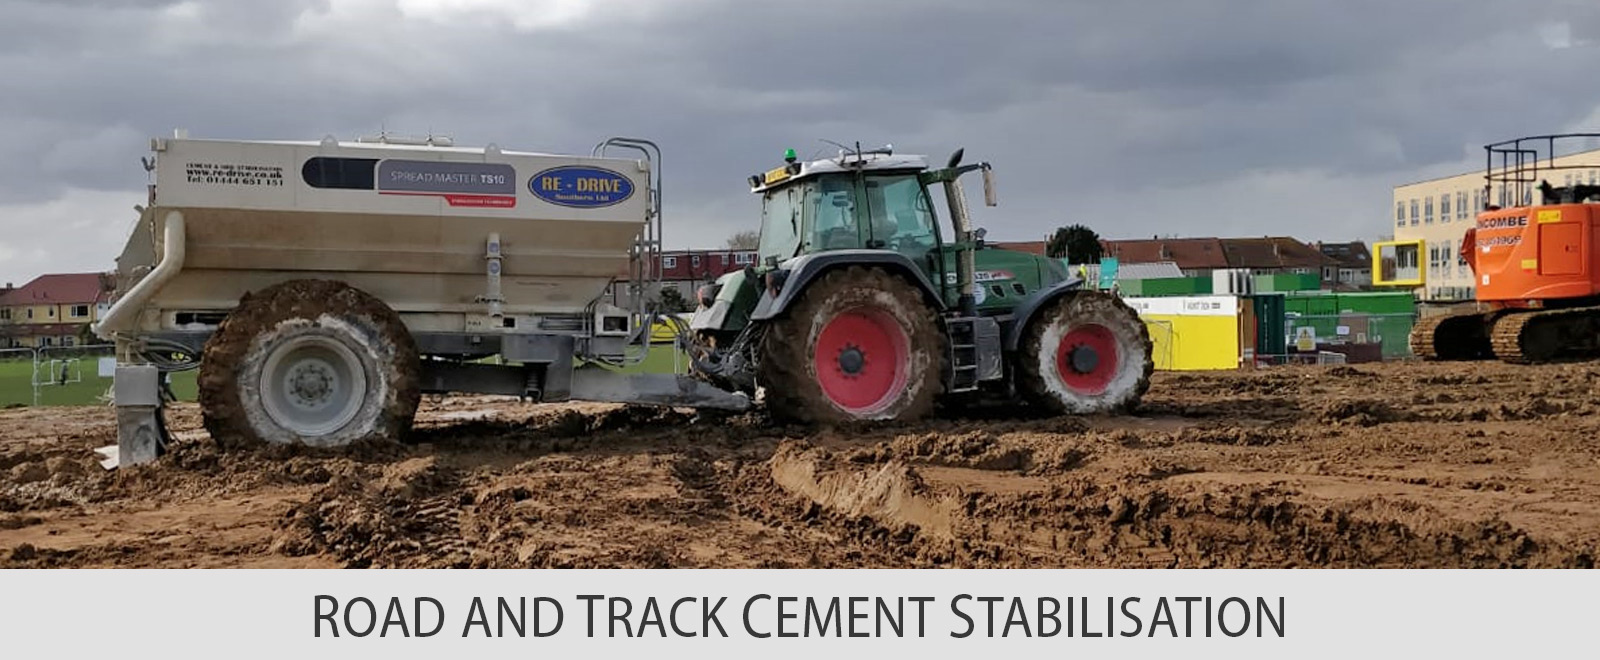 ROAD AND TRACK CEMENT STABILISATION